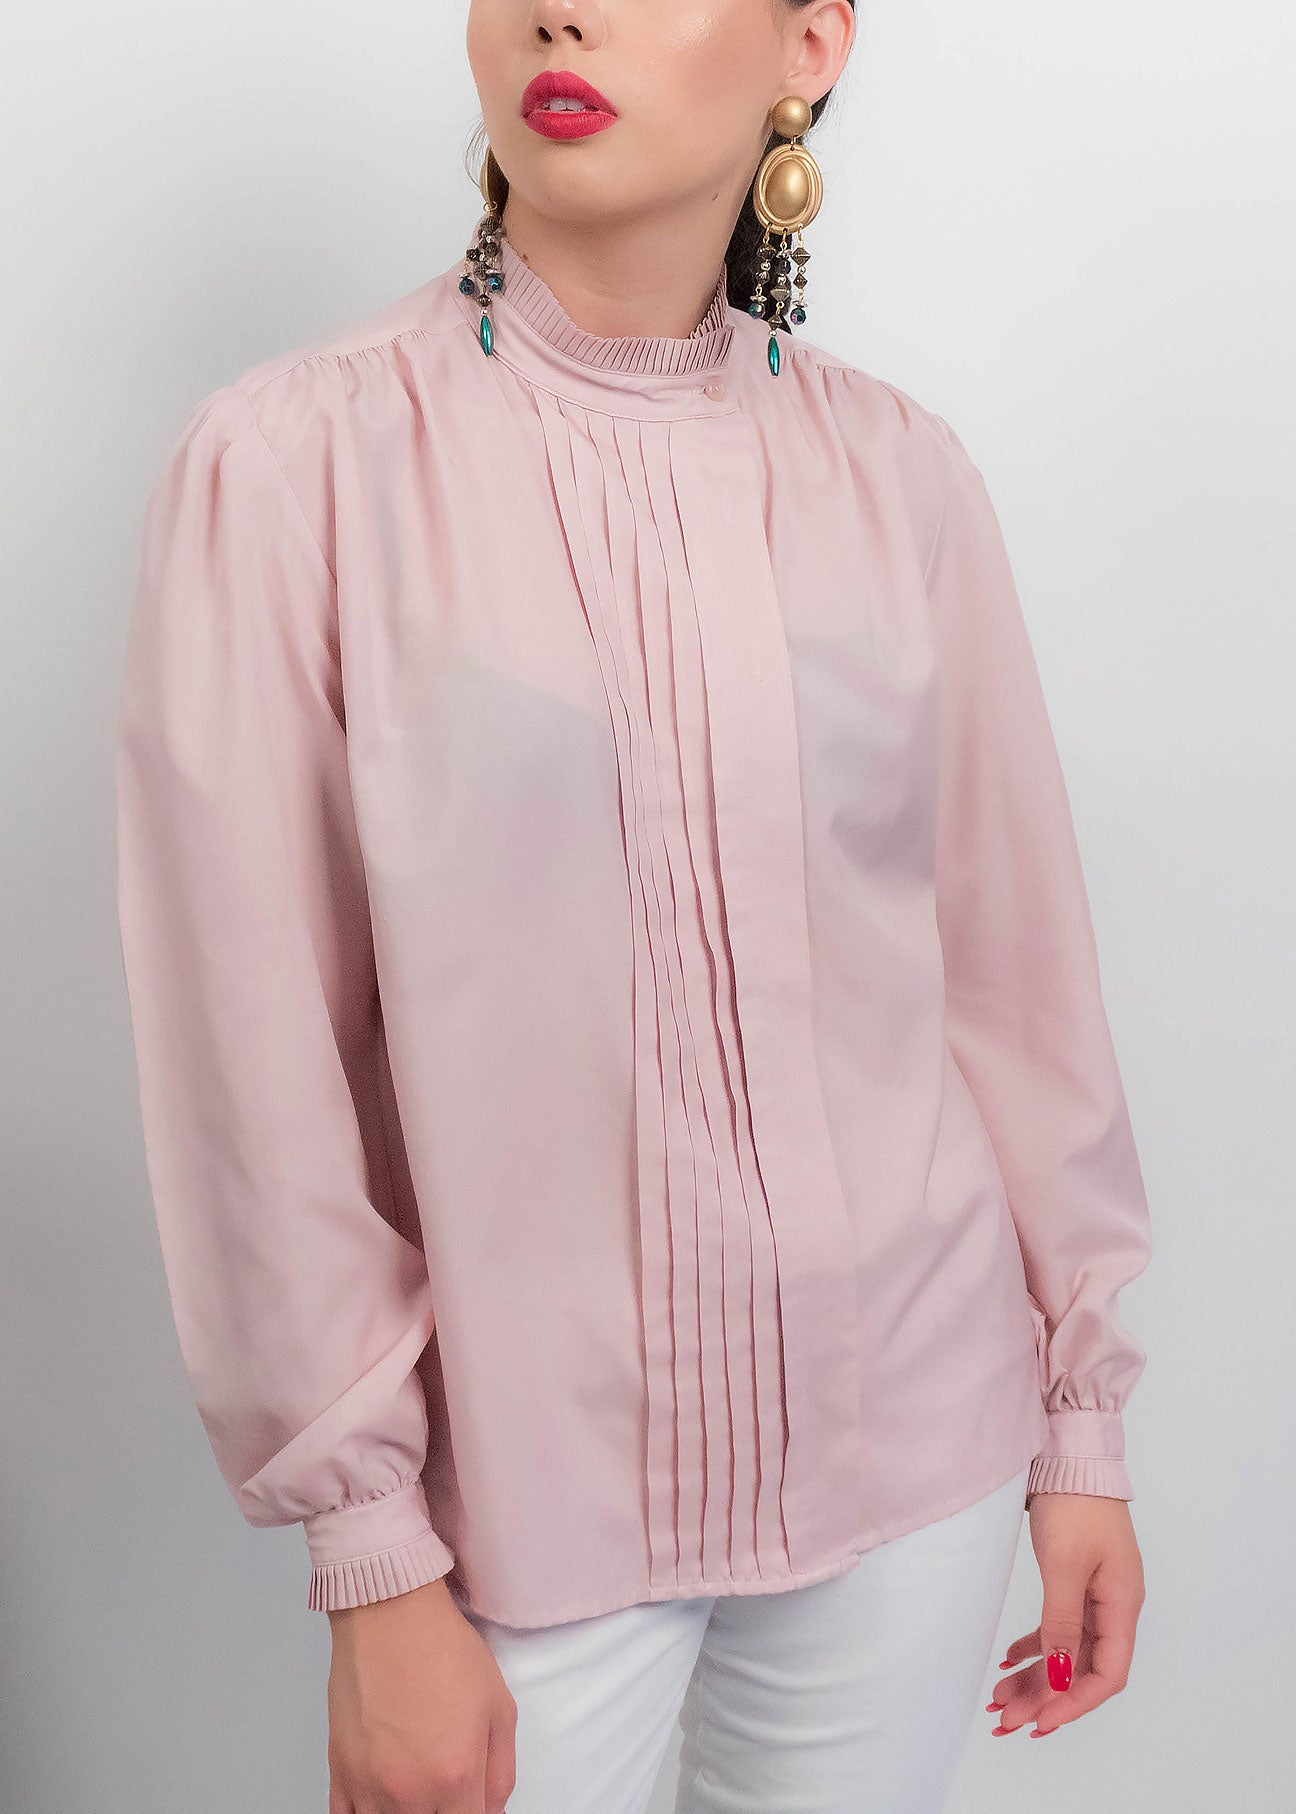 70s Blush Pleated Blouse